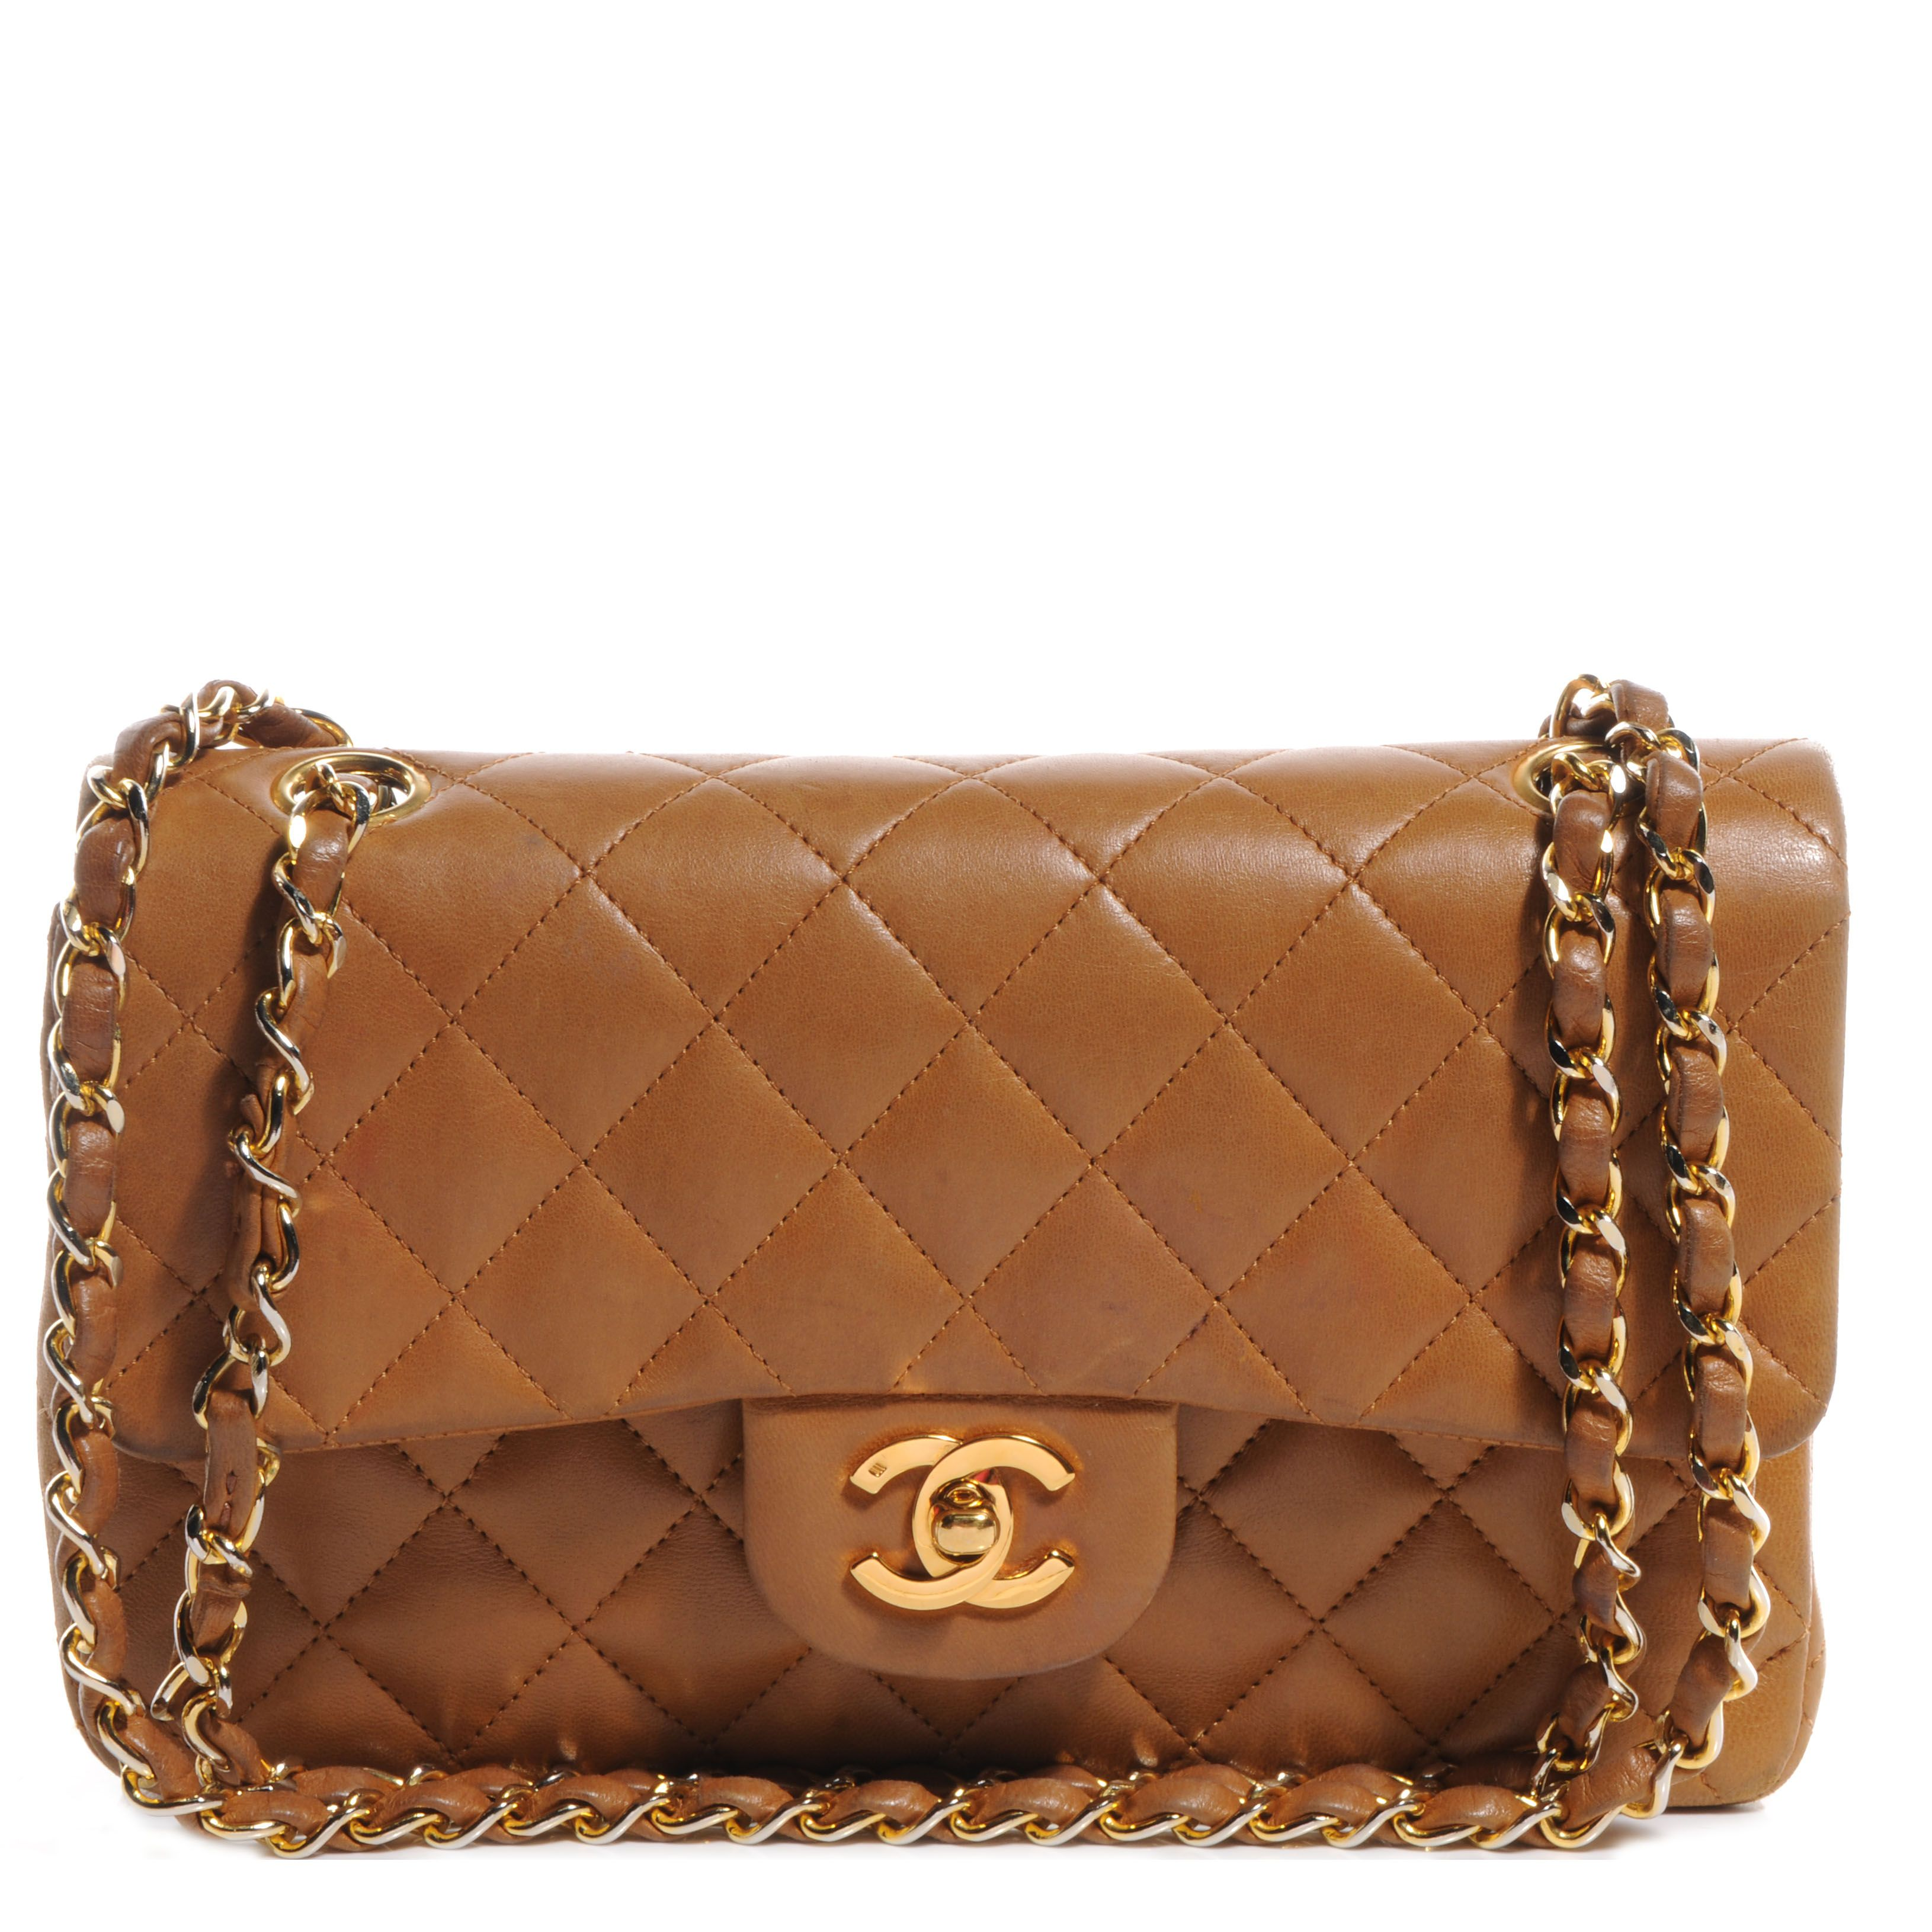 9518653dd2eb Fashionphile - CHANEL Vintage Lambskin Small Double Flap Light Brown